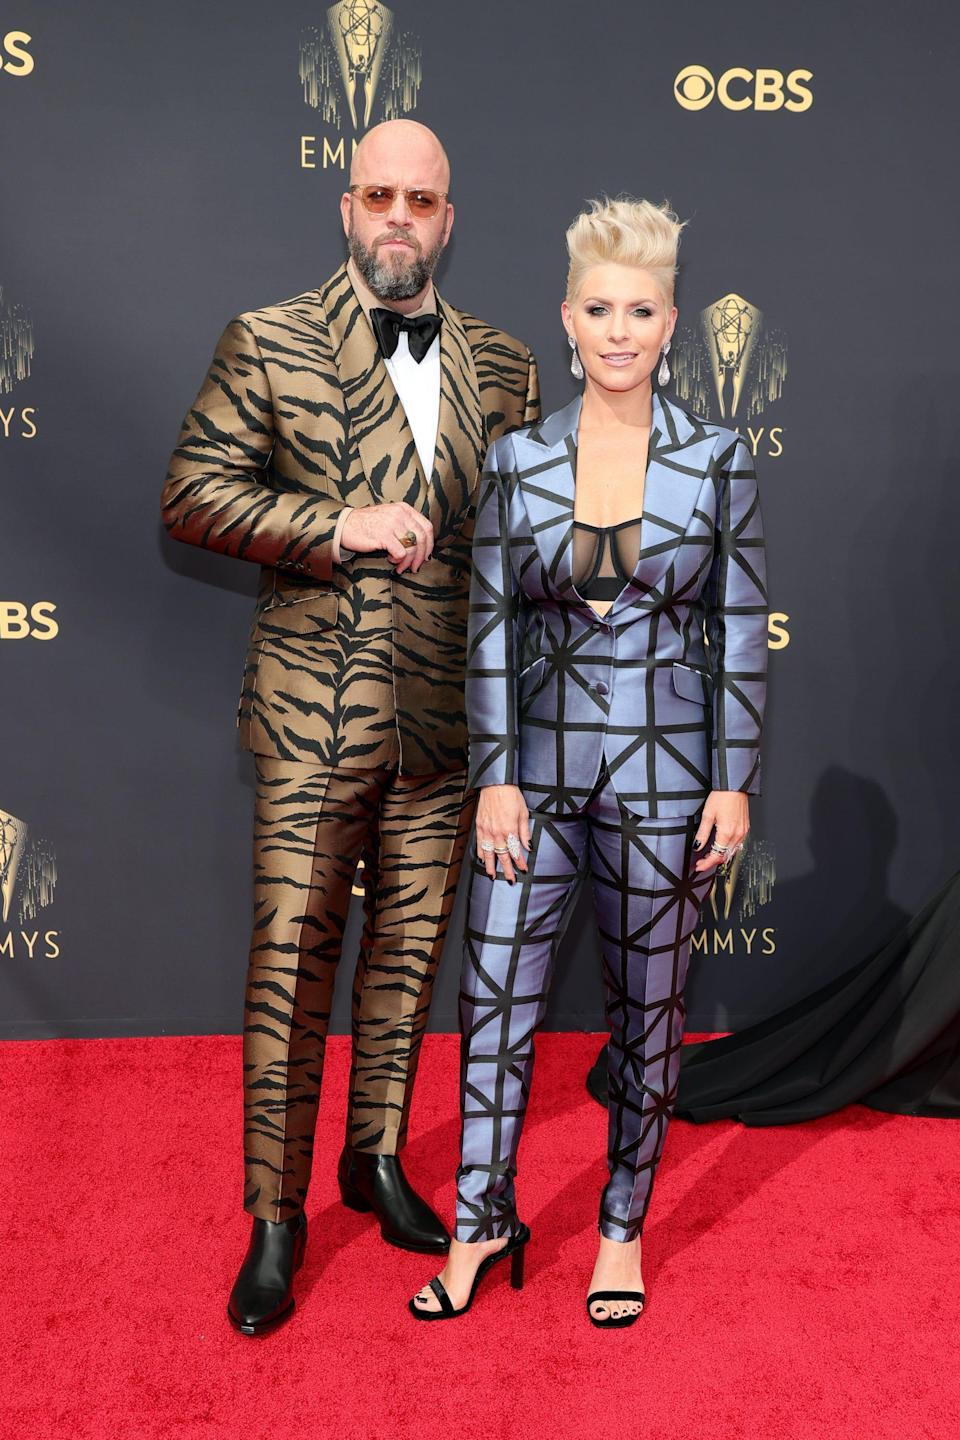 Chris and Rachel Sullivan wear animal print suits on the Emmys red carpet.